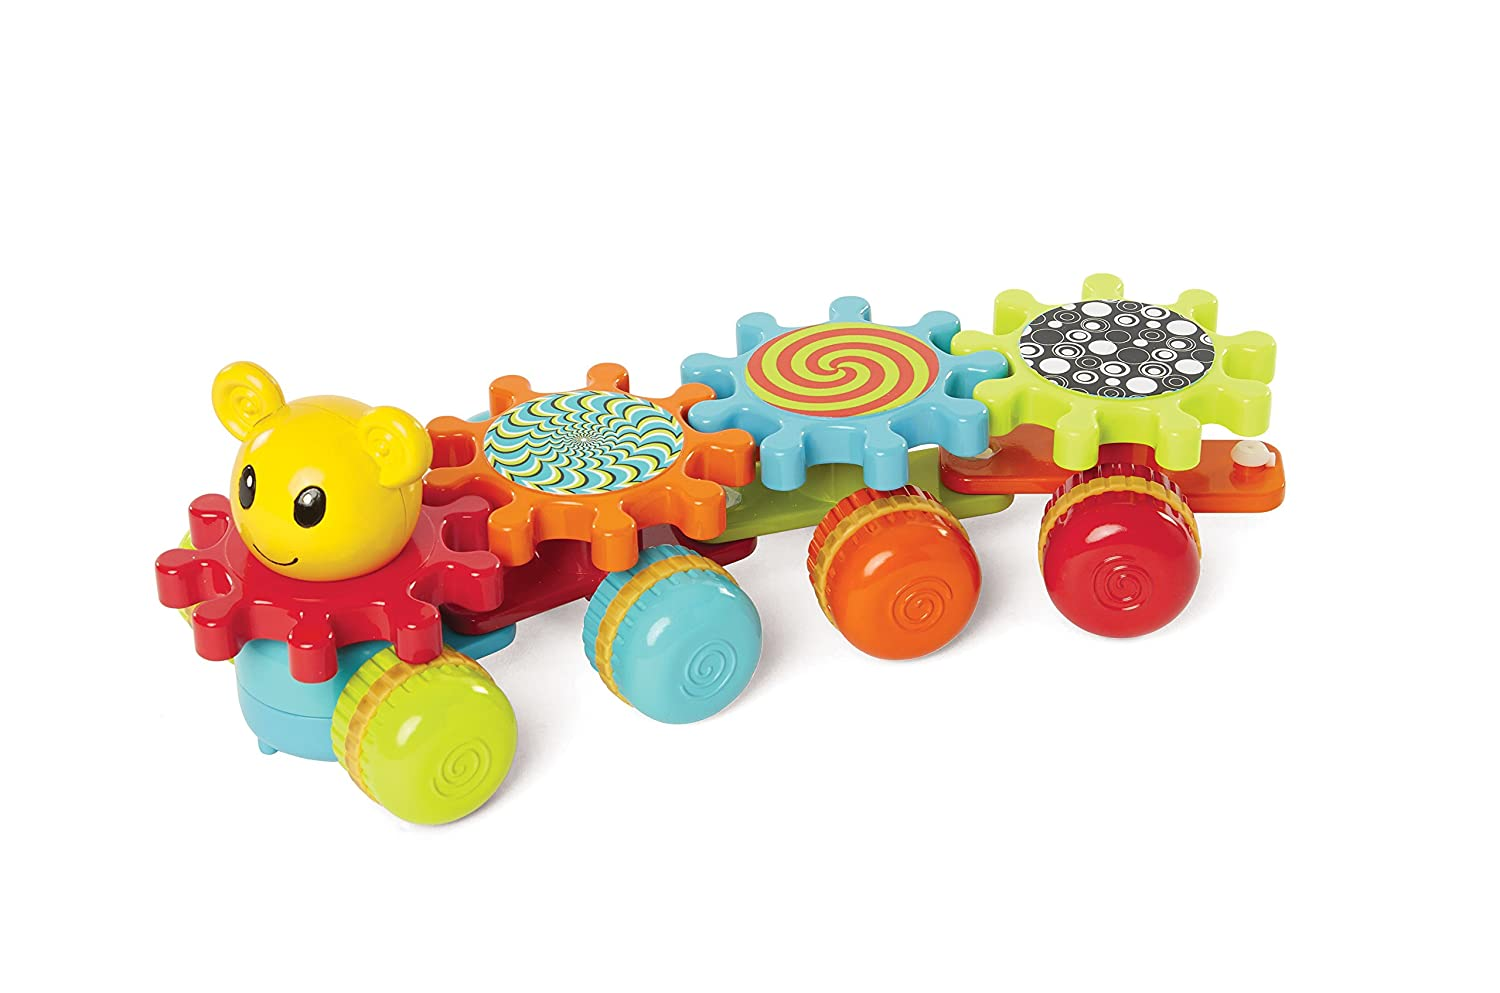 Earlyears Gearapiller Rolling Toy with Spinning Gears